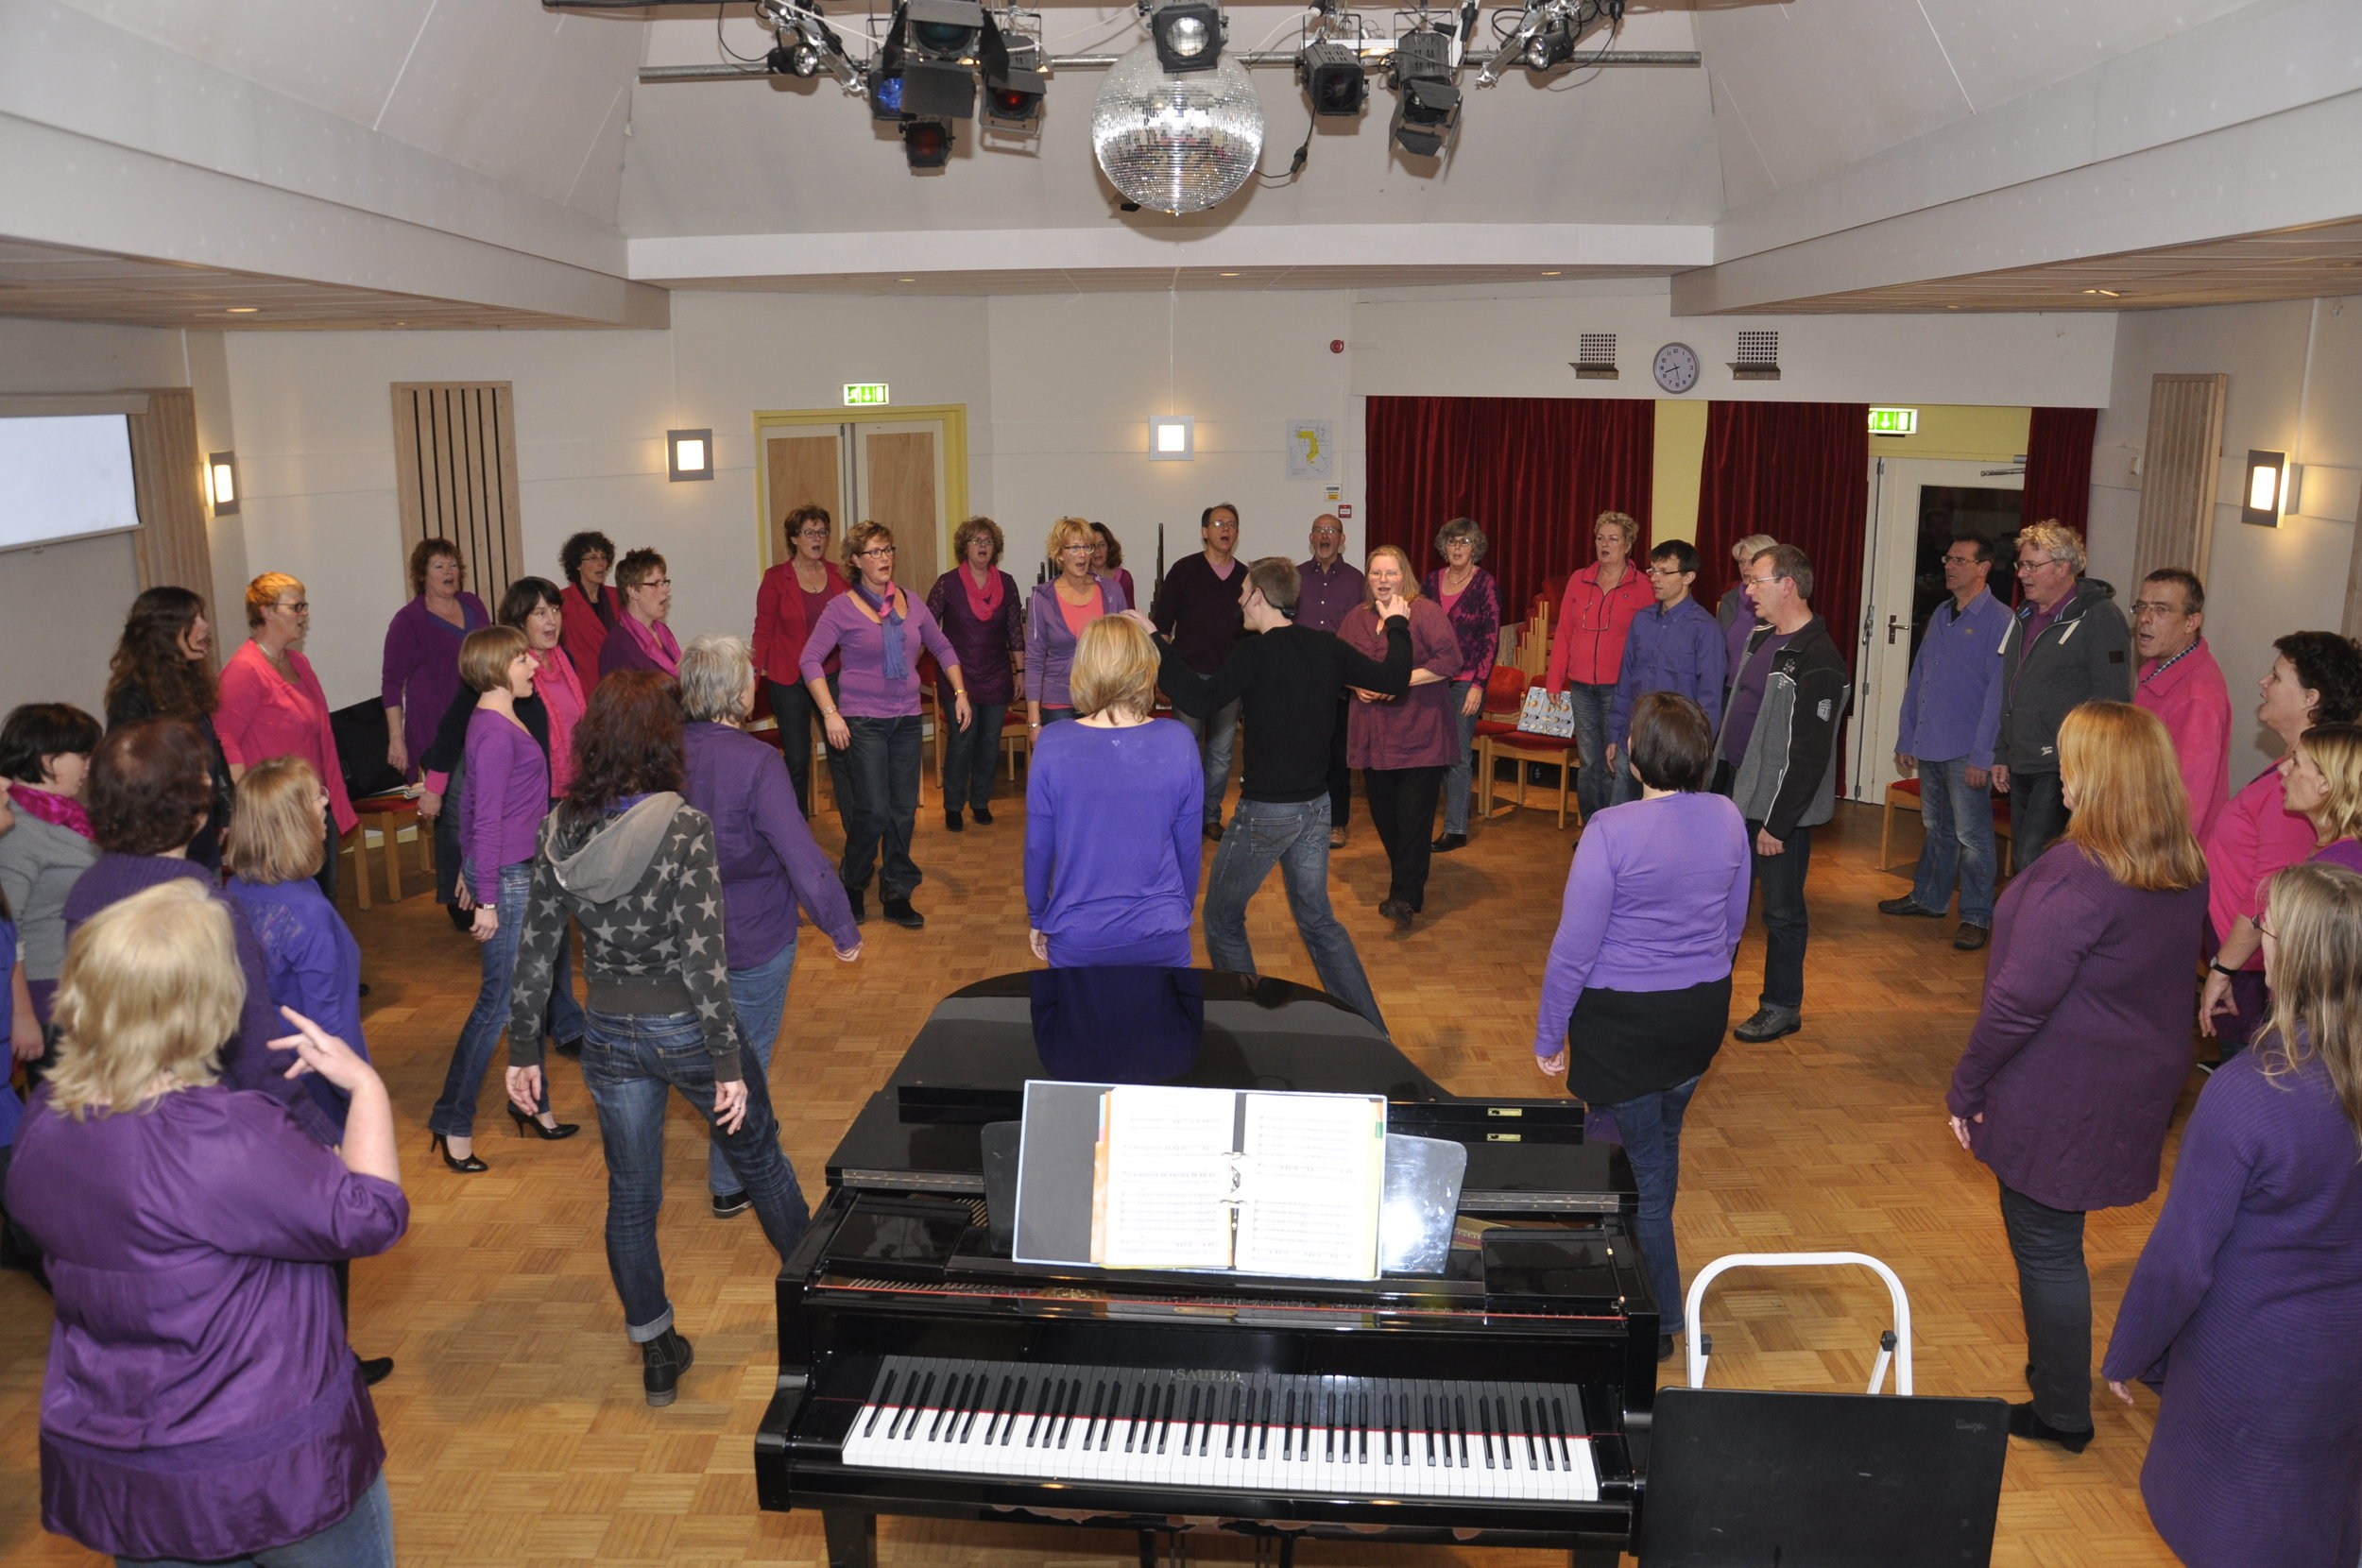 Choir workshops - I'm open for workshops! Have a look at the possibilities here. Feel free to book a workshop by filling in the contact form and I will get back to you ASAP.